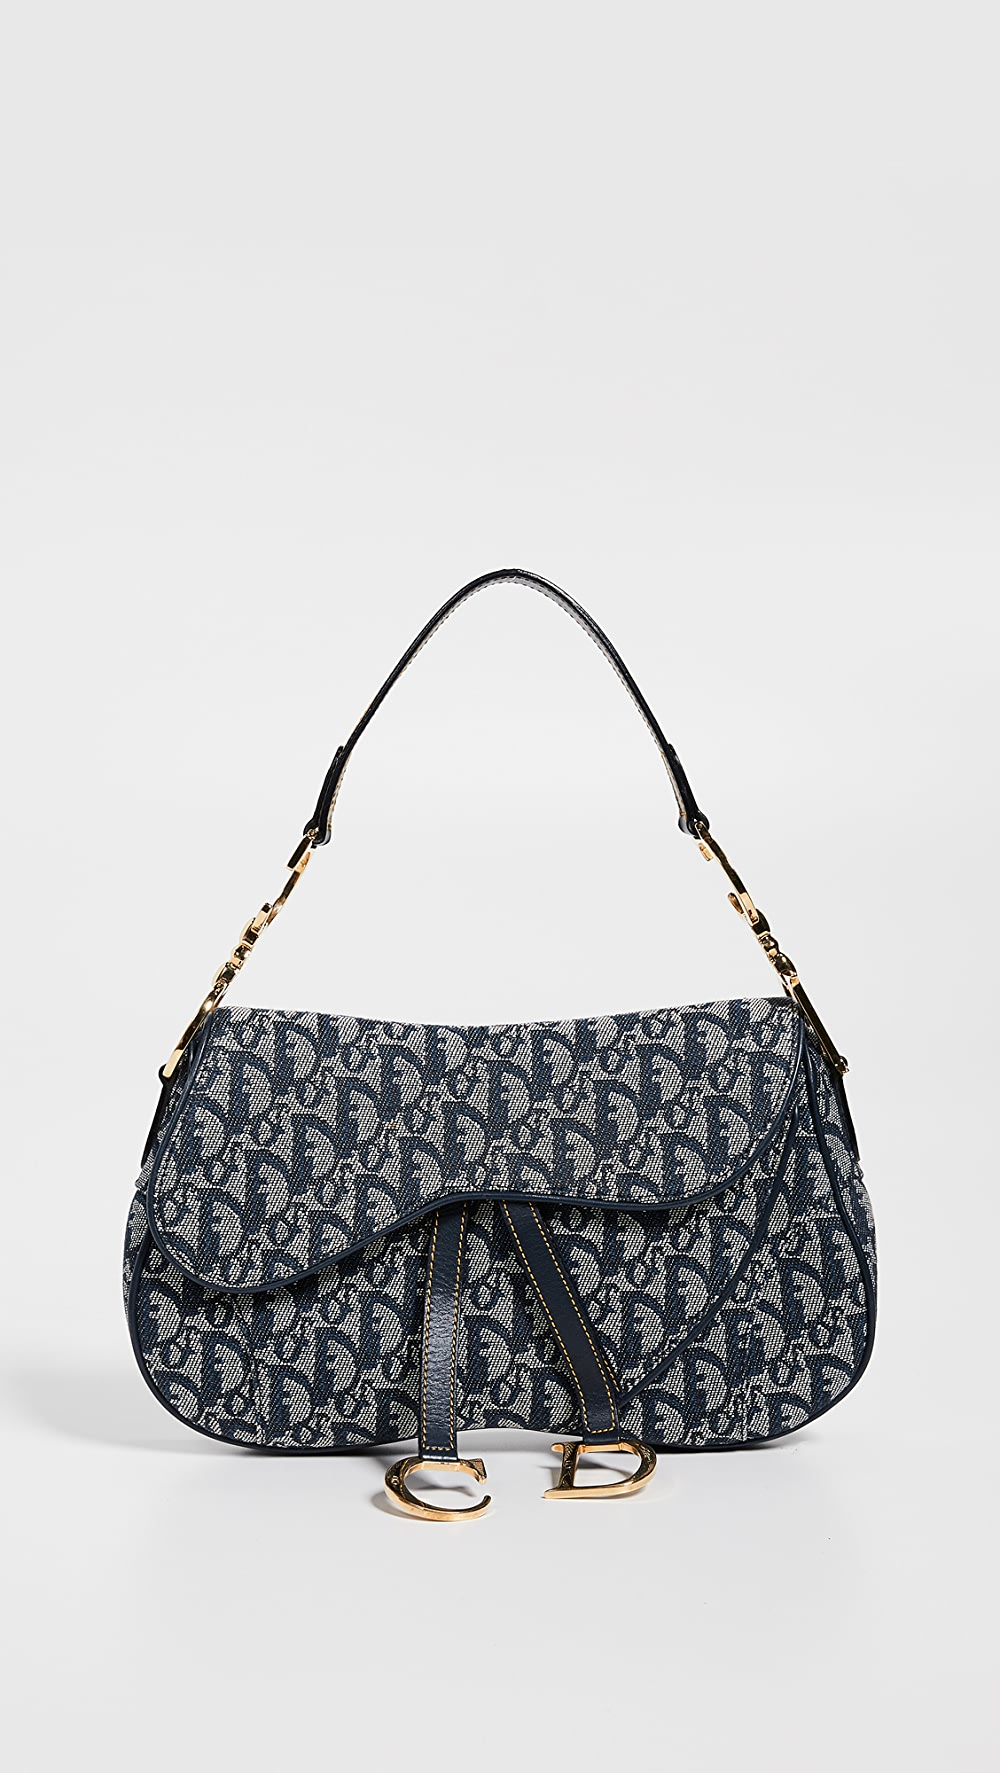 Intelligent What Goes Around Comes Around - Dior Canvas Double Saddle Bag Fashionable Patterns